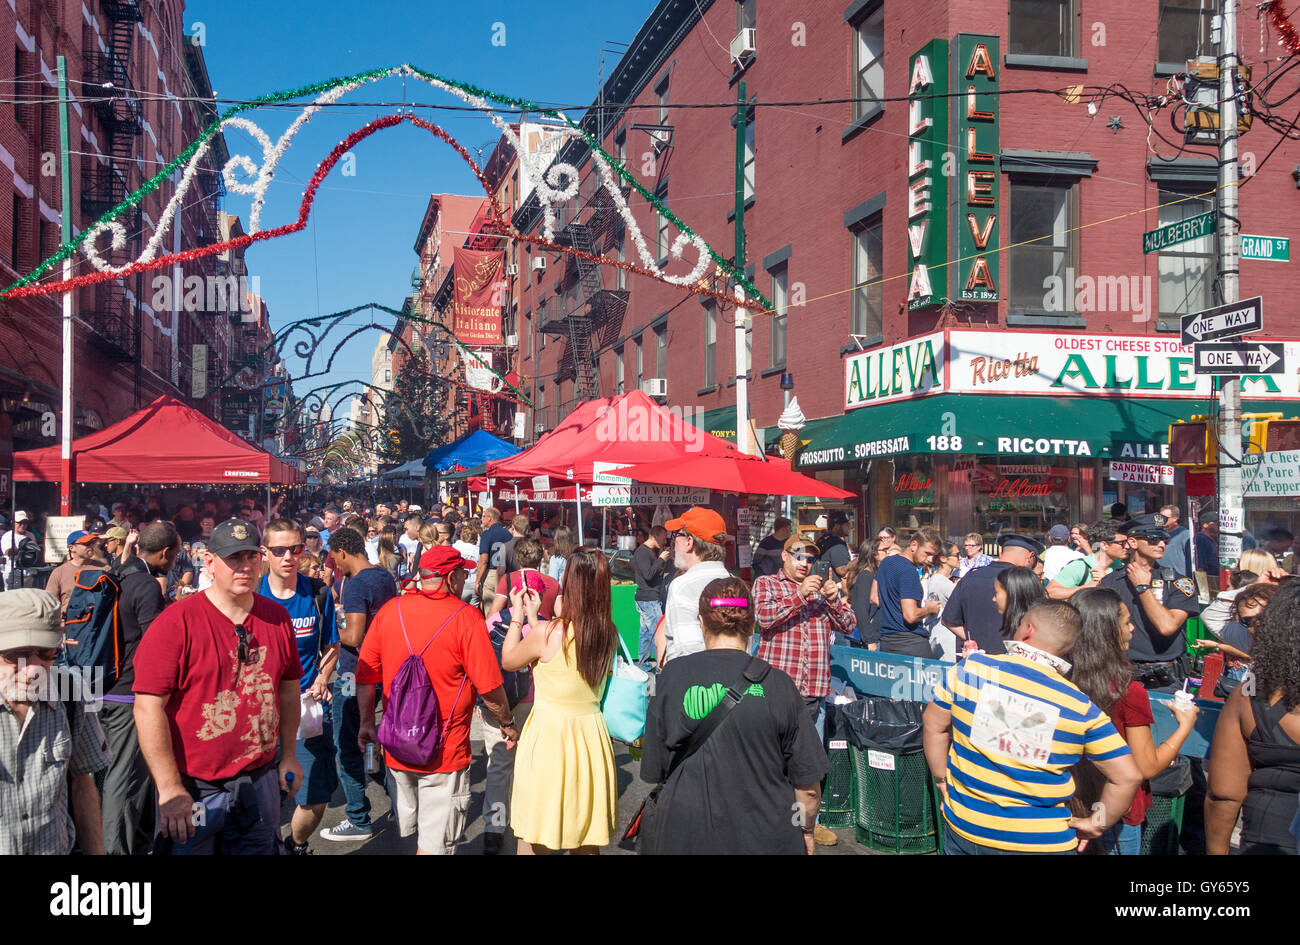 Crowds on Mulberry Street in Little Italy for the San Gennaro Feast - Stock Image